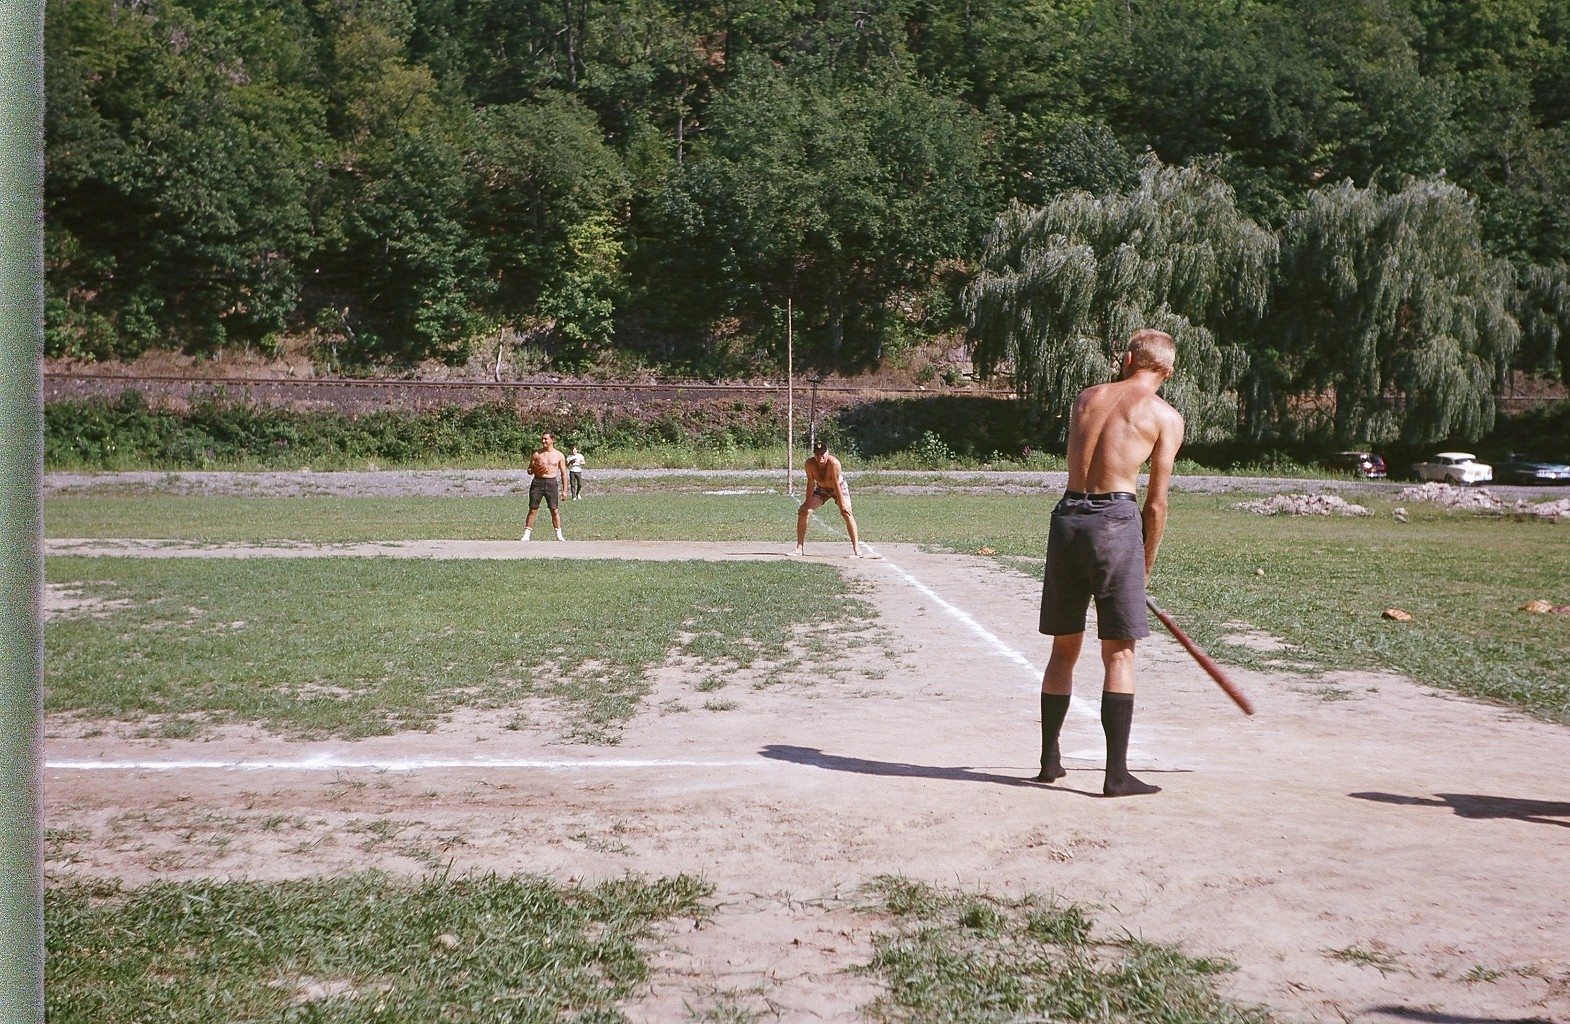 Sunday Baseball Game at Williams Lake- Randy Siegel Standing on First Base